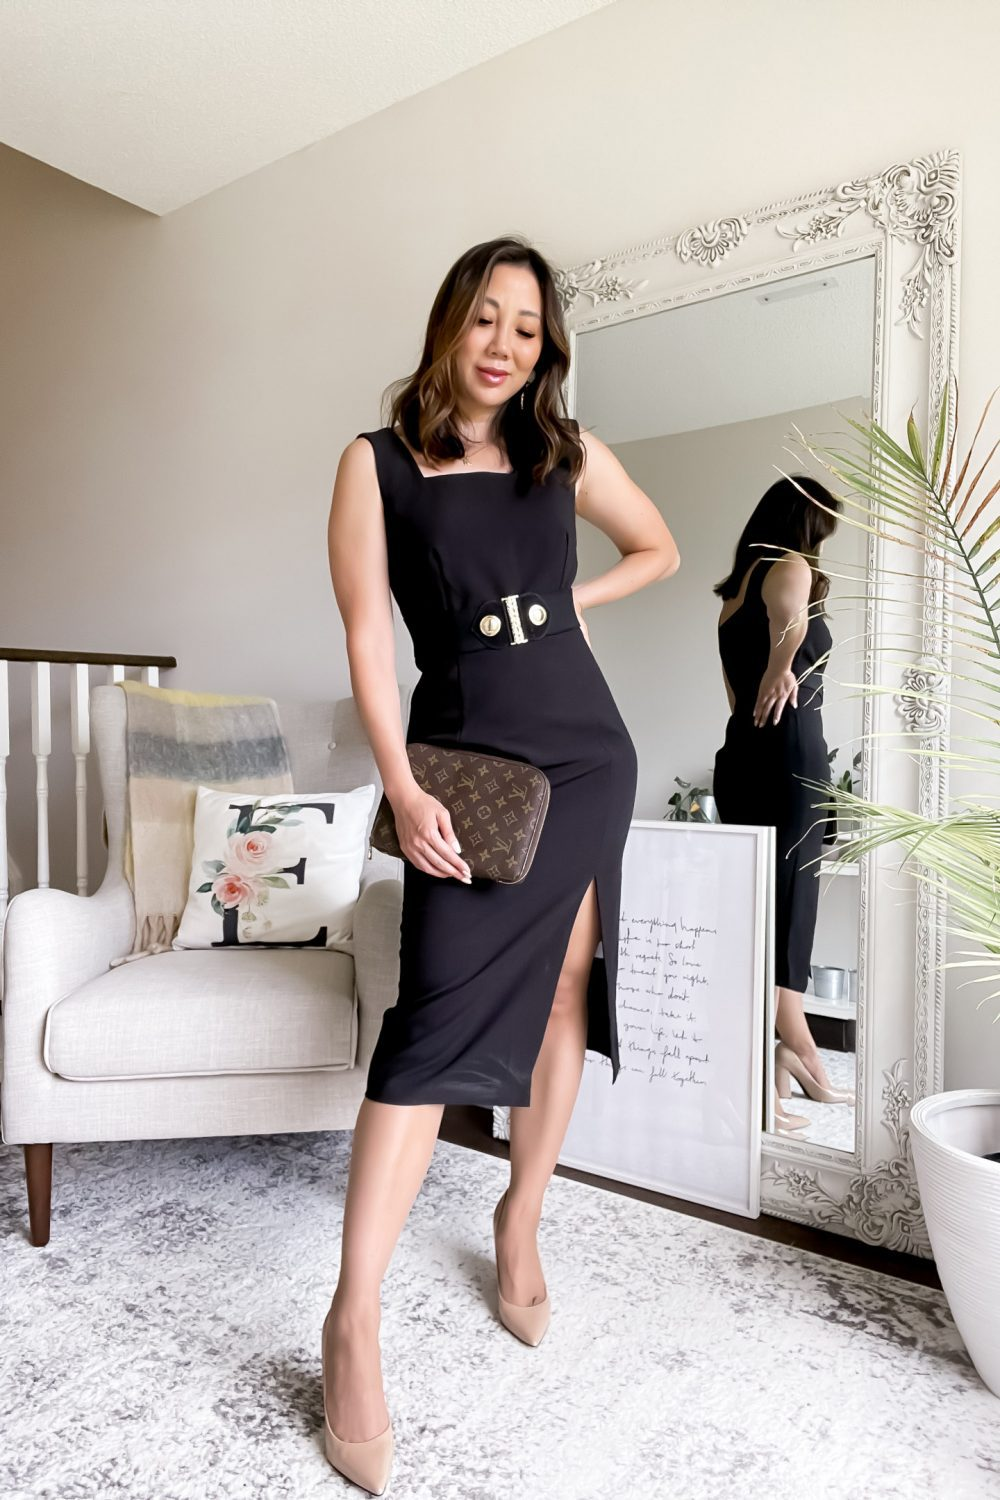 Classy date night look with little black dress from MOTF collection worn by YesMissy.